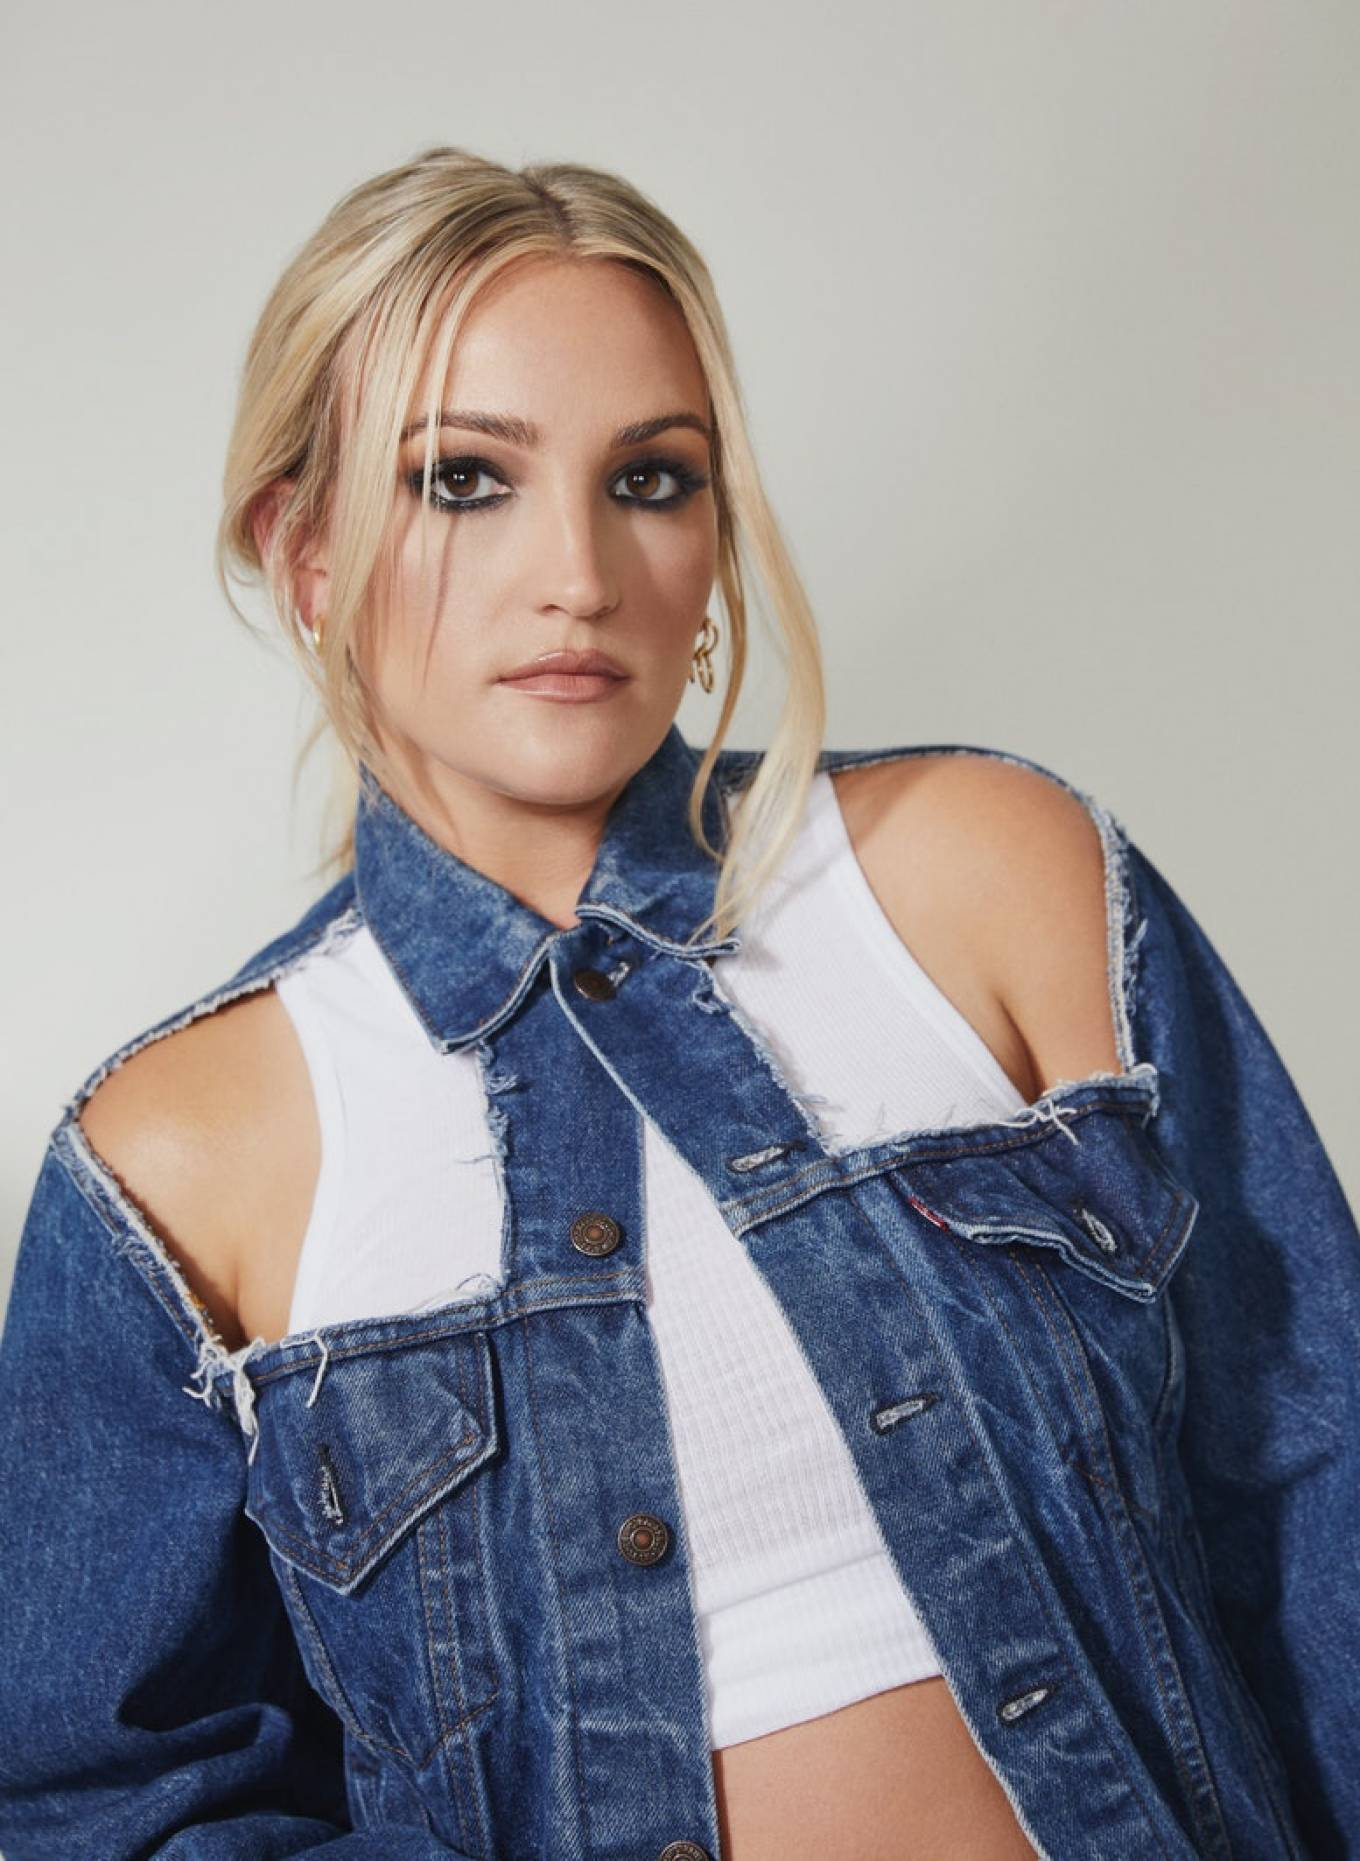 Jamie Lynn Spears - Tawni Bannister photoshoot for Nylon - October 2020